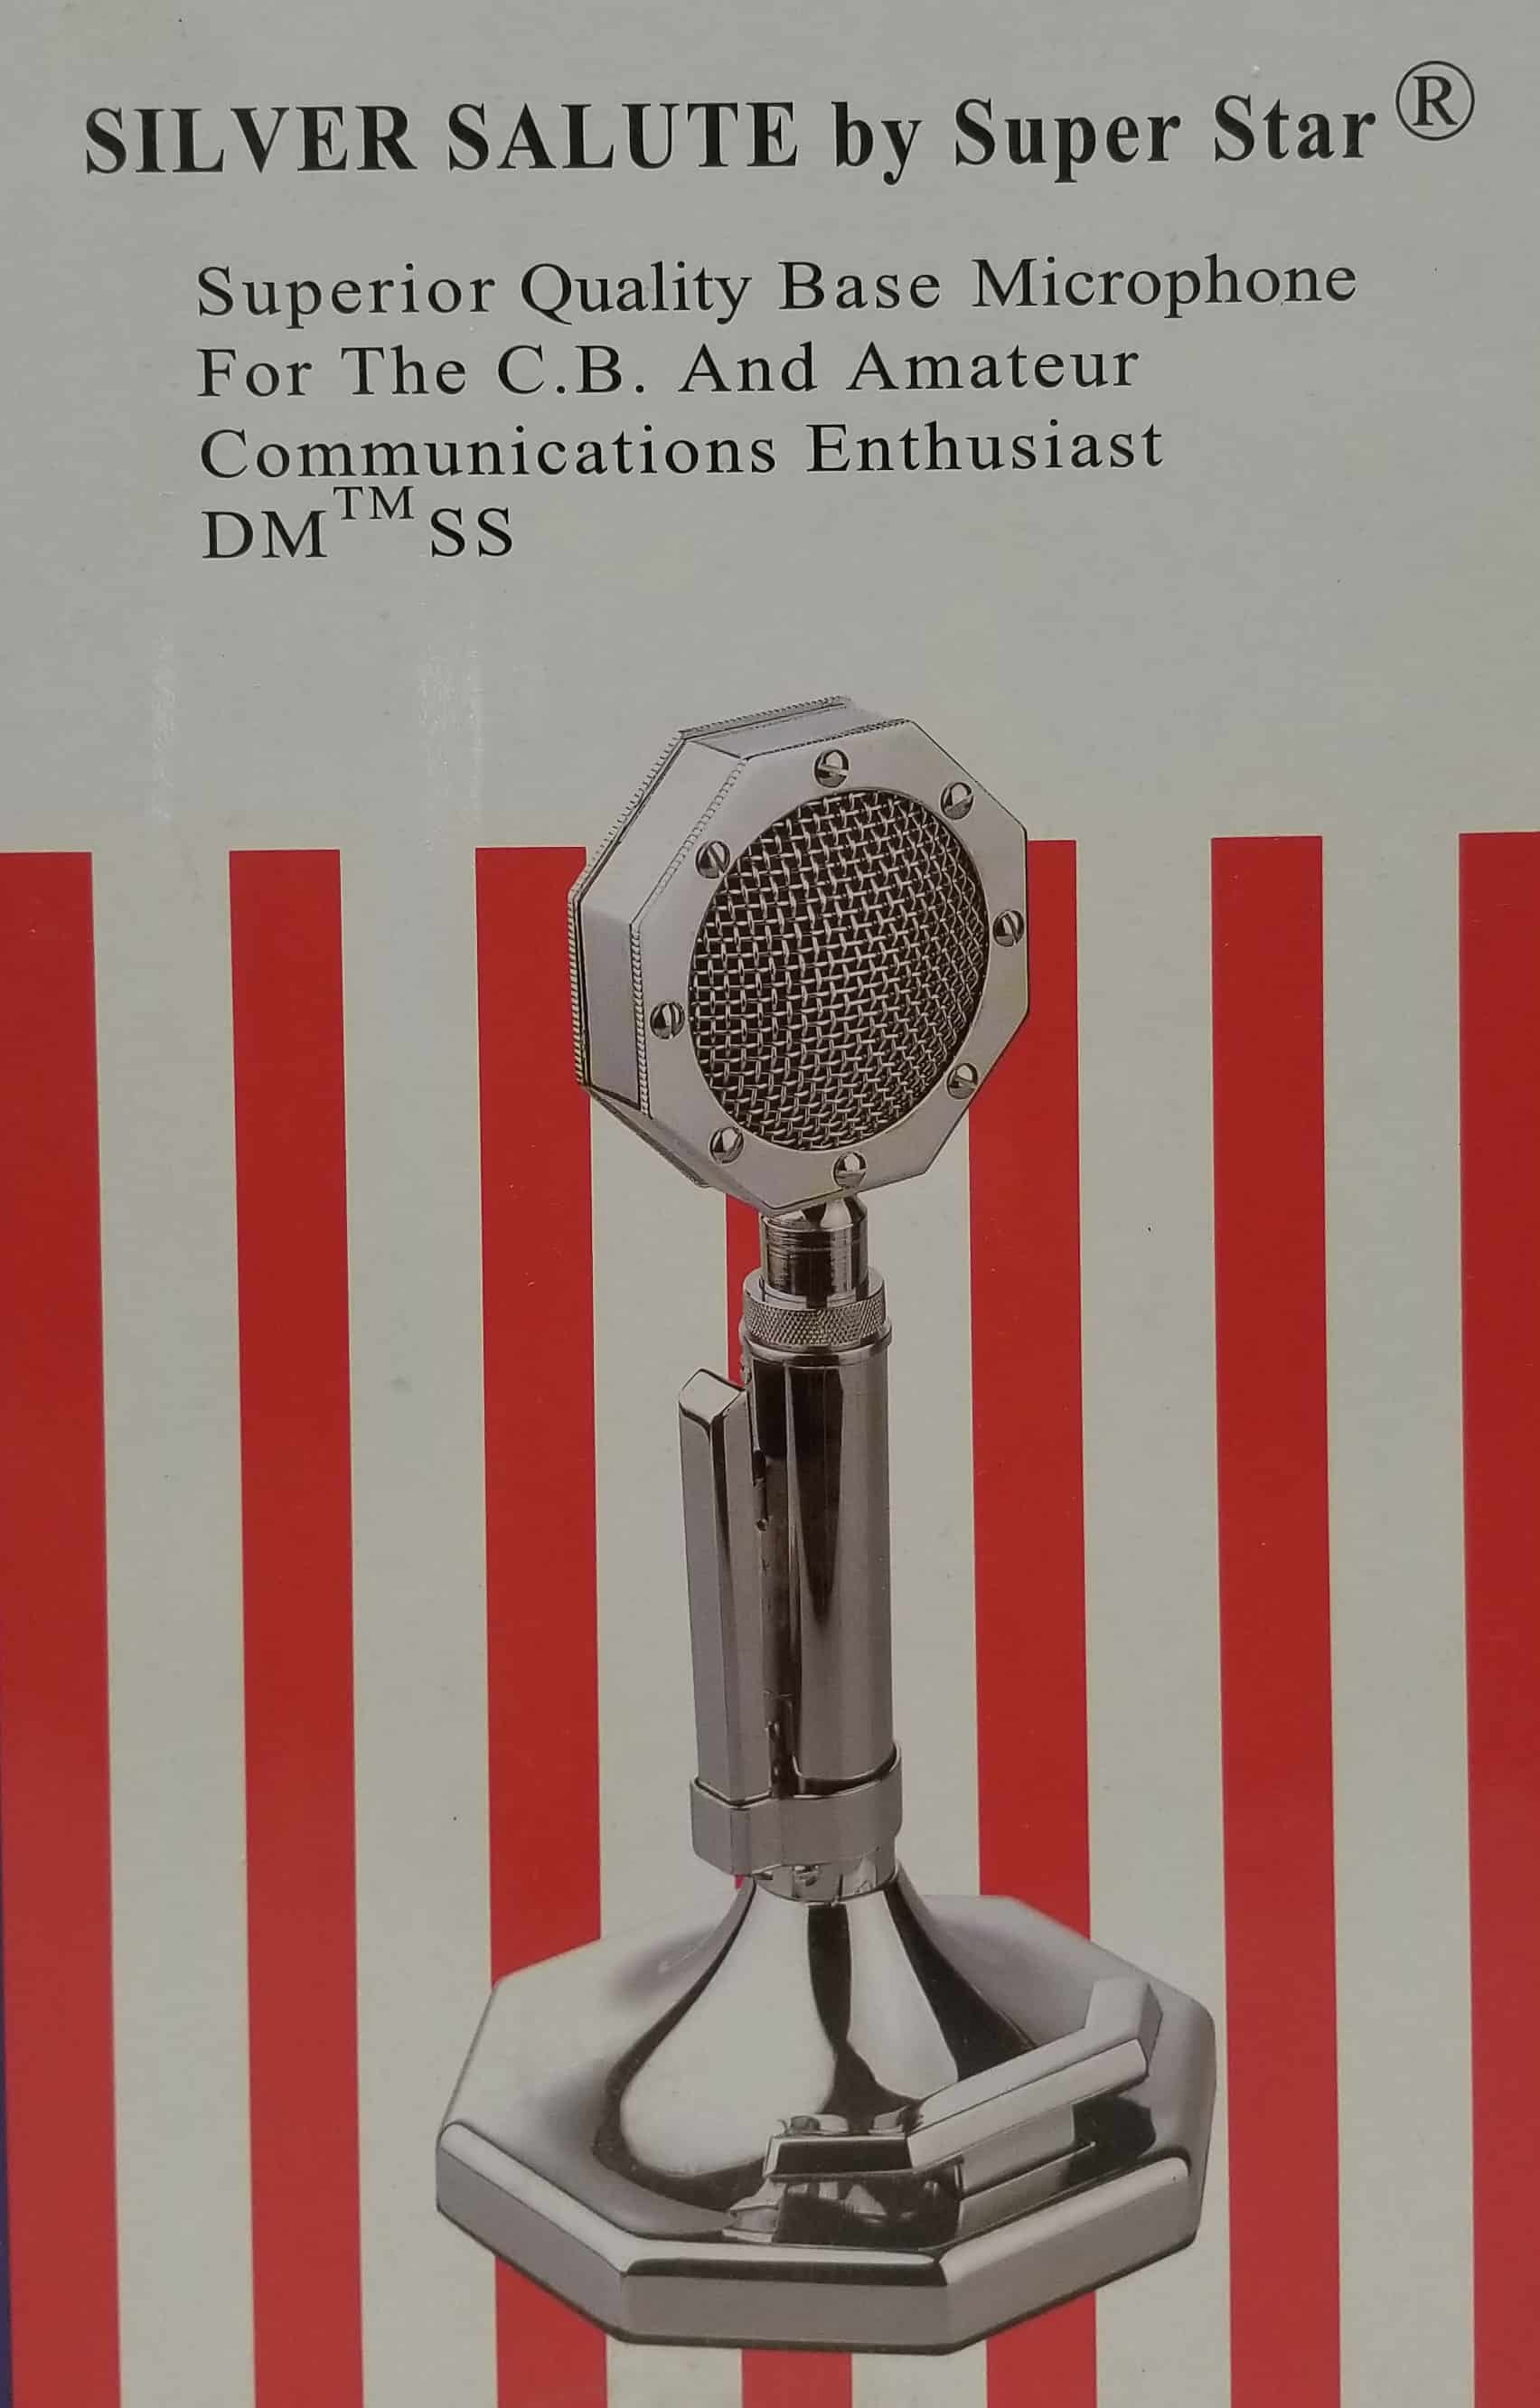 SILVER SALUTE - Super Star Base Station Microphone Wired 4 Pin (Cobra/Uniden)